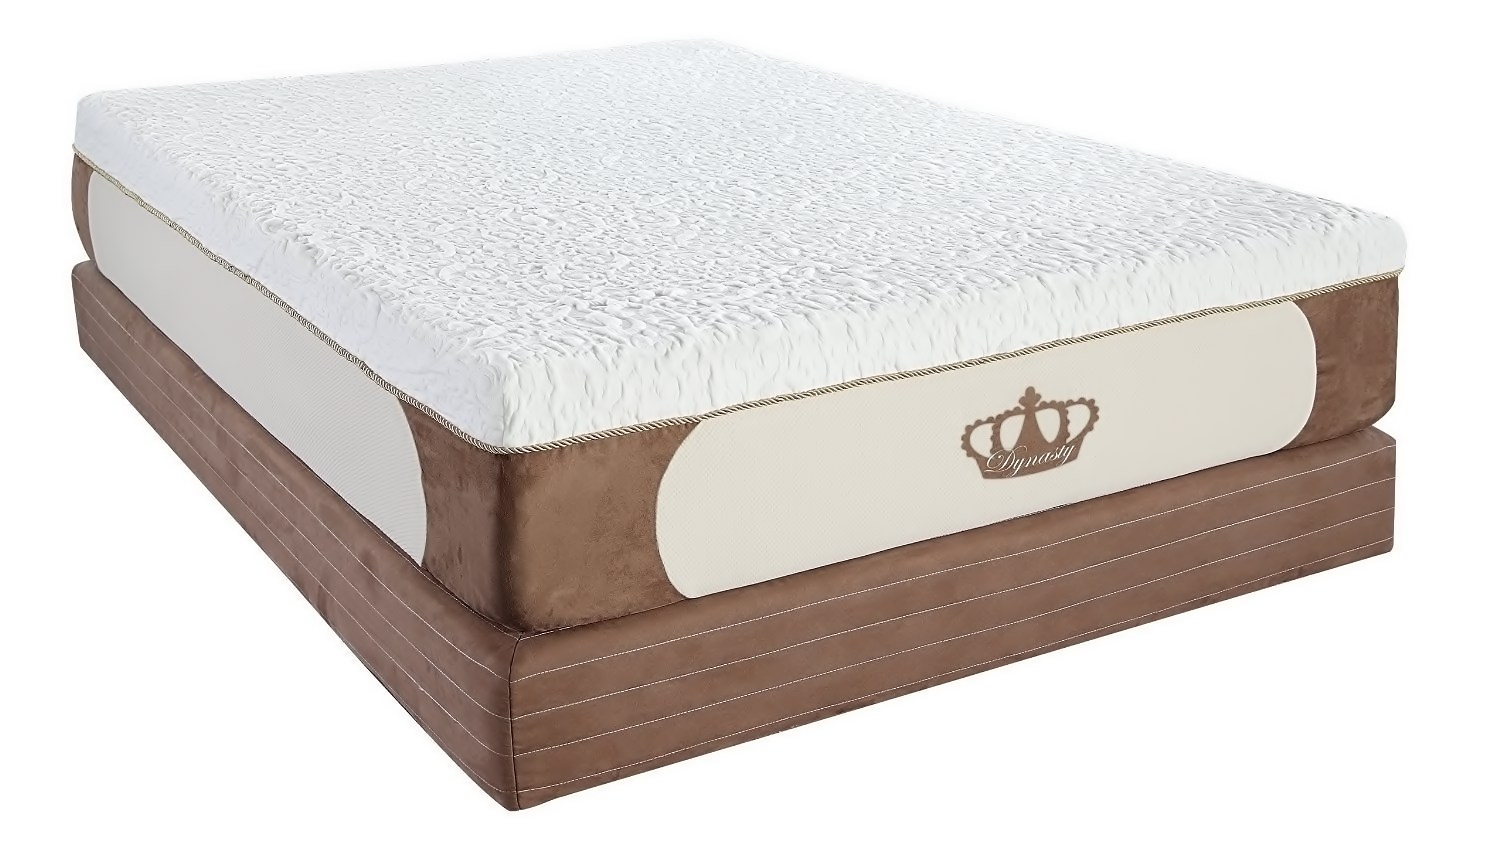 DynastyMattress High Density Open Cell CoolBreeze Gel Memory Foam Mattress